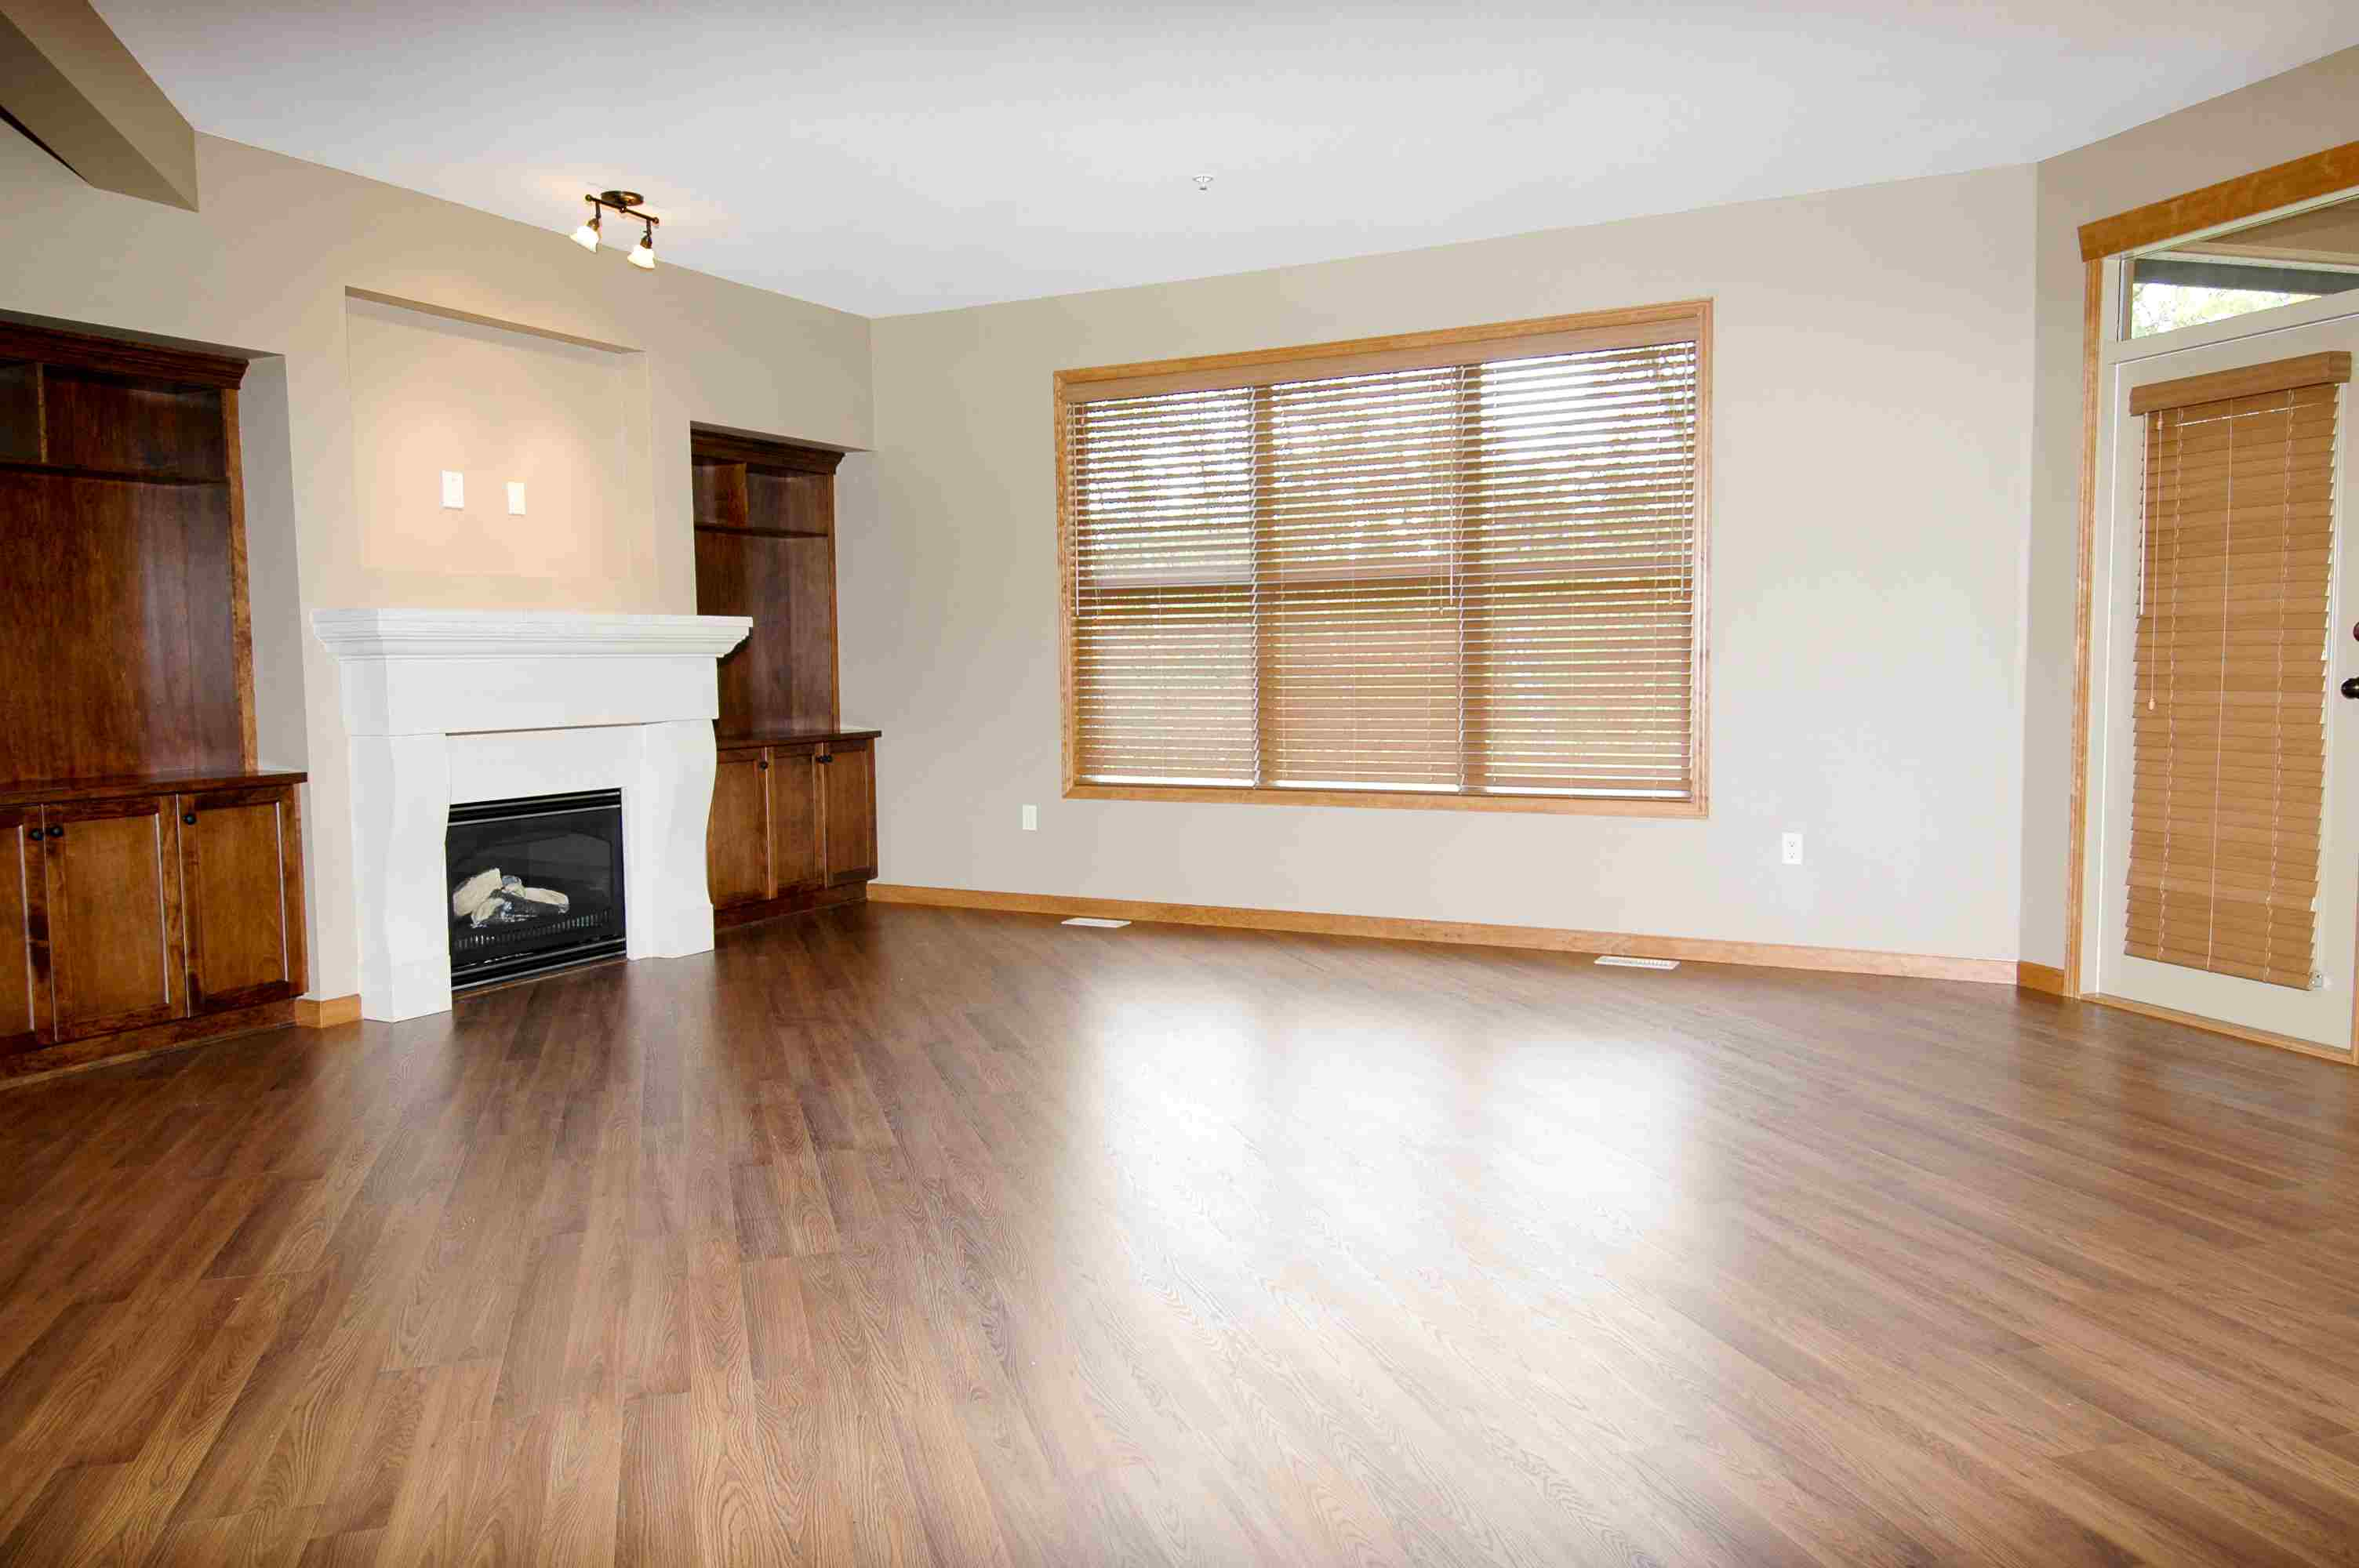 Large empty room with fireplace and wood flooring